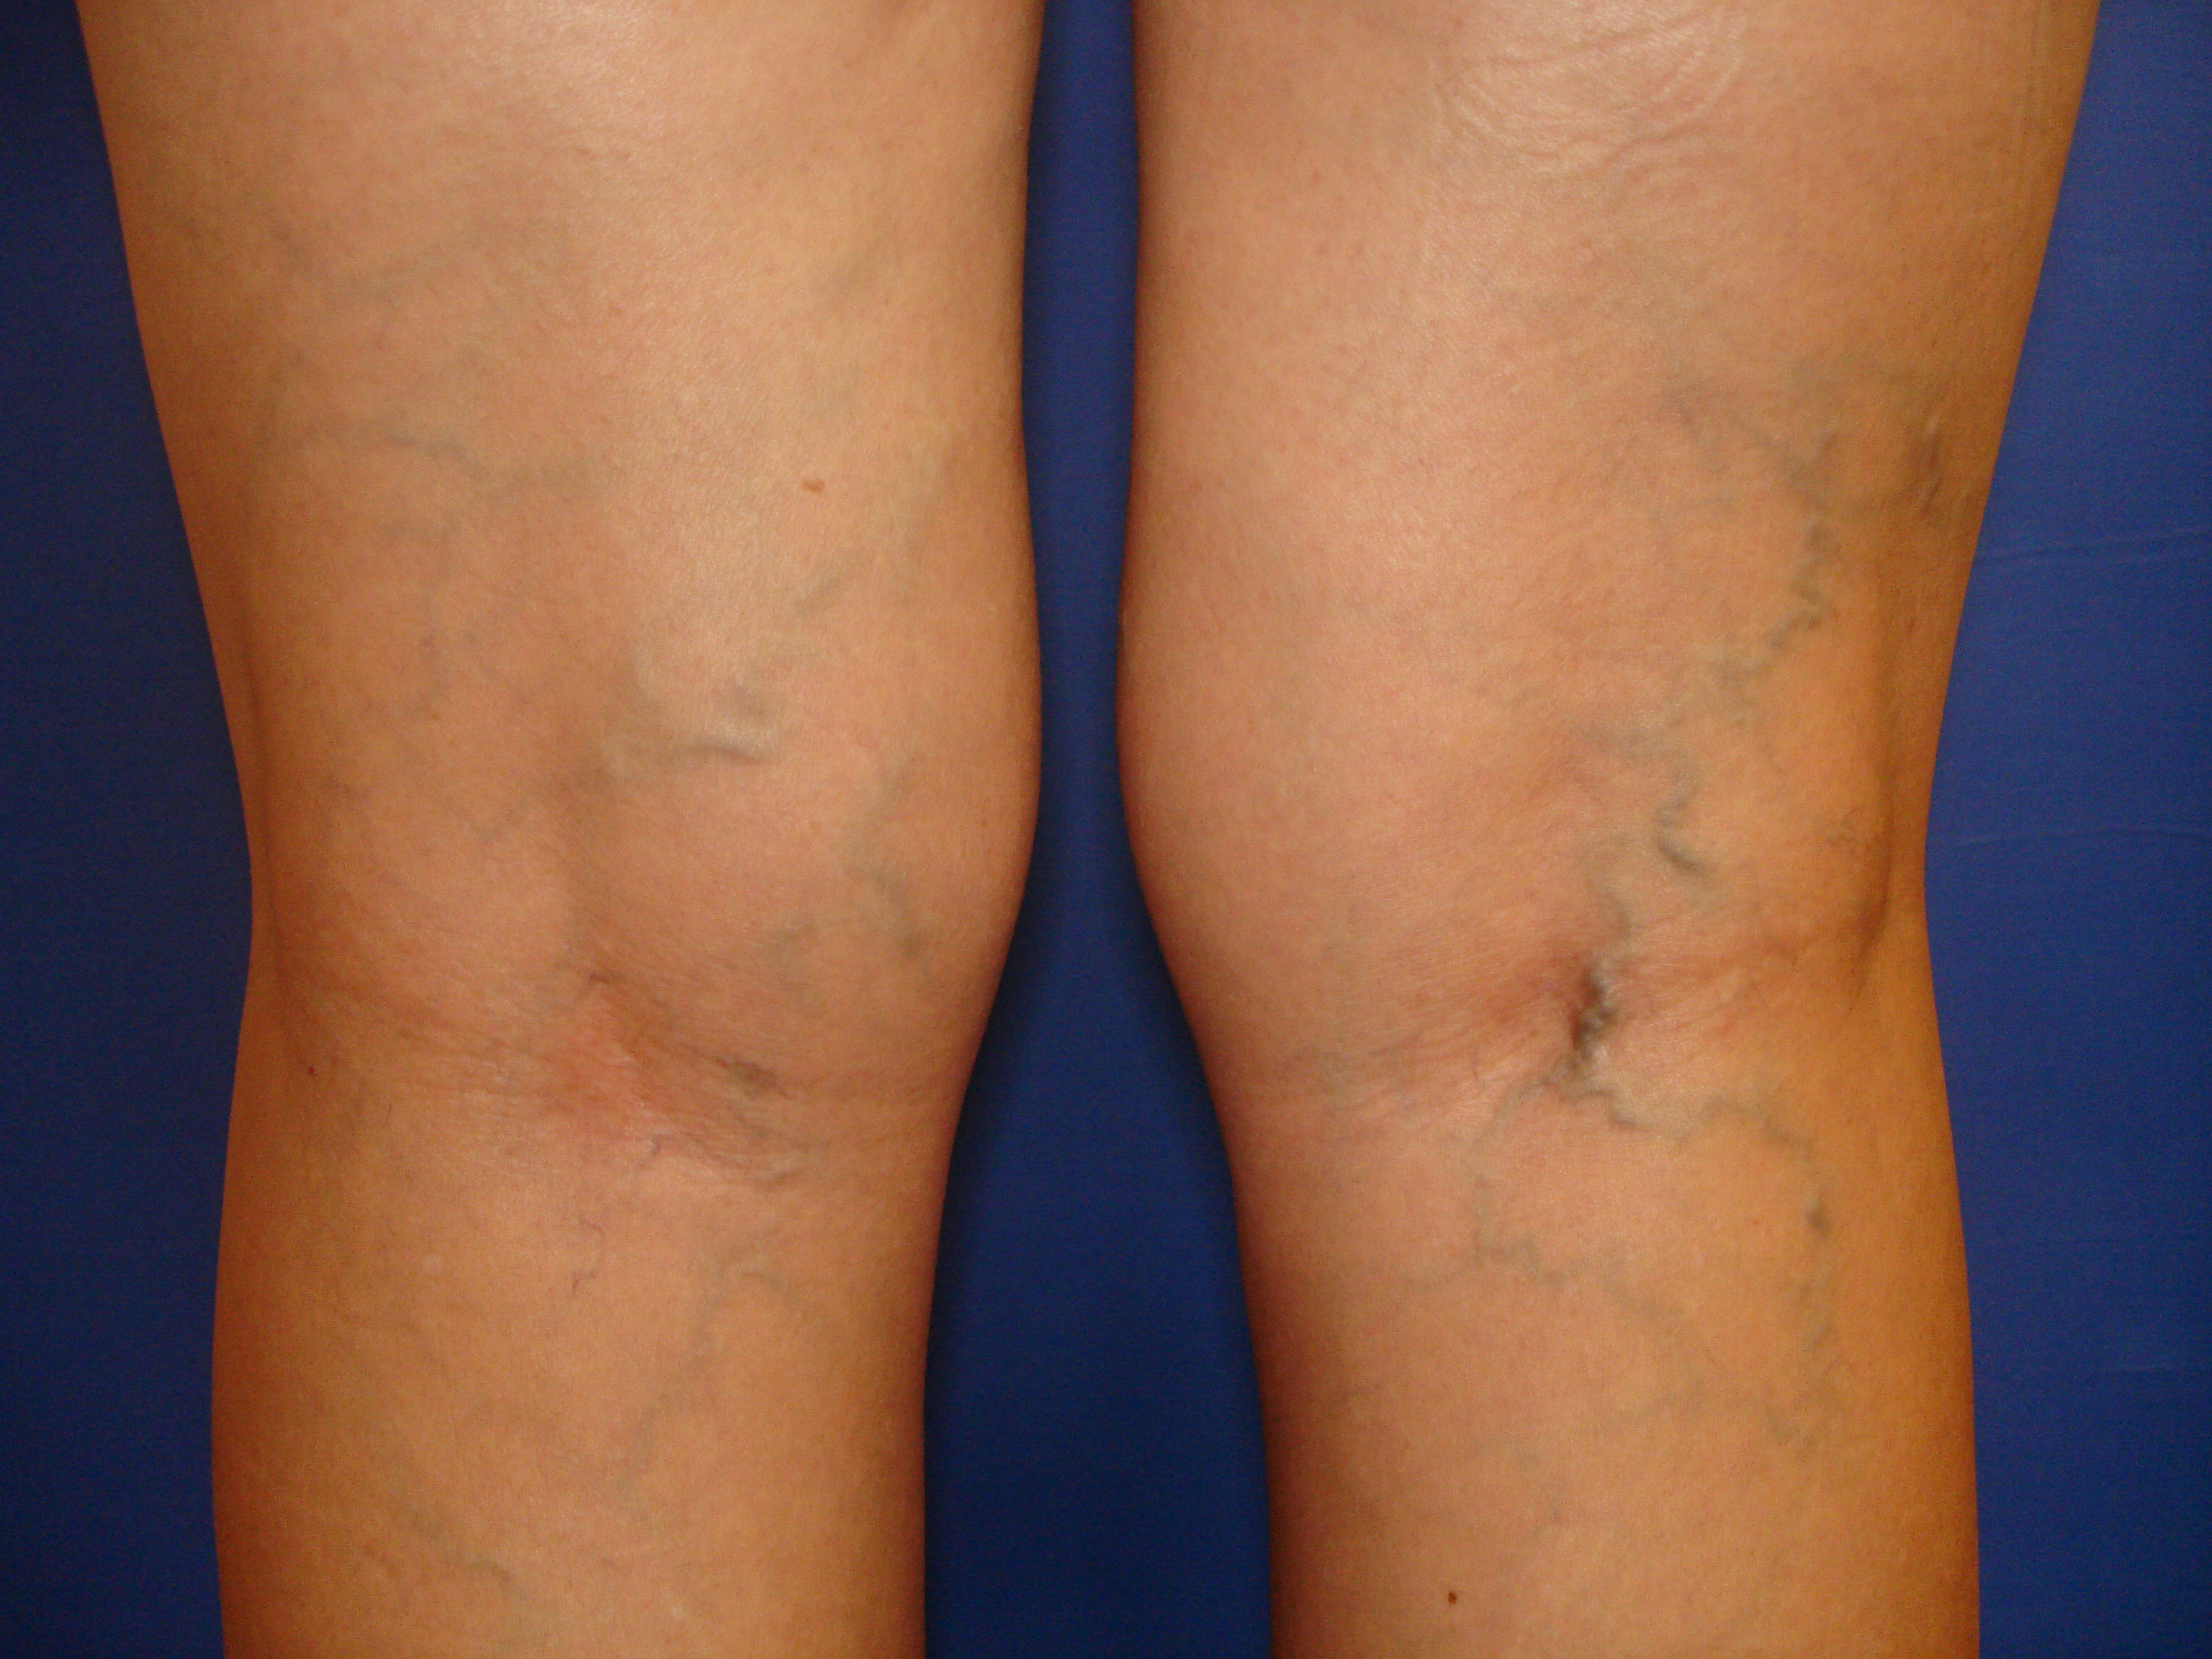 Before & After Photos - Advanced Vein Care